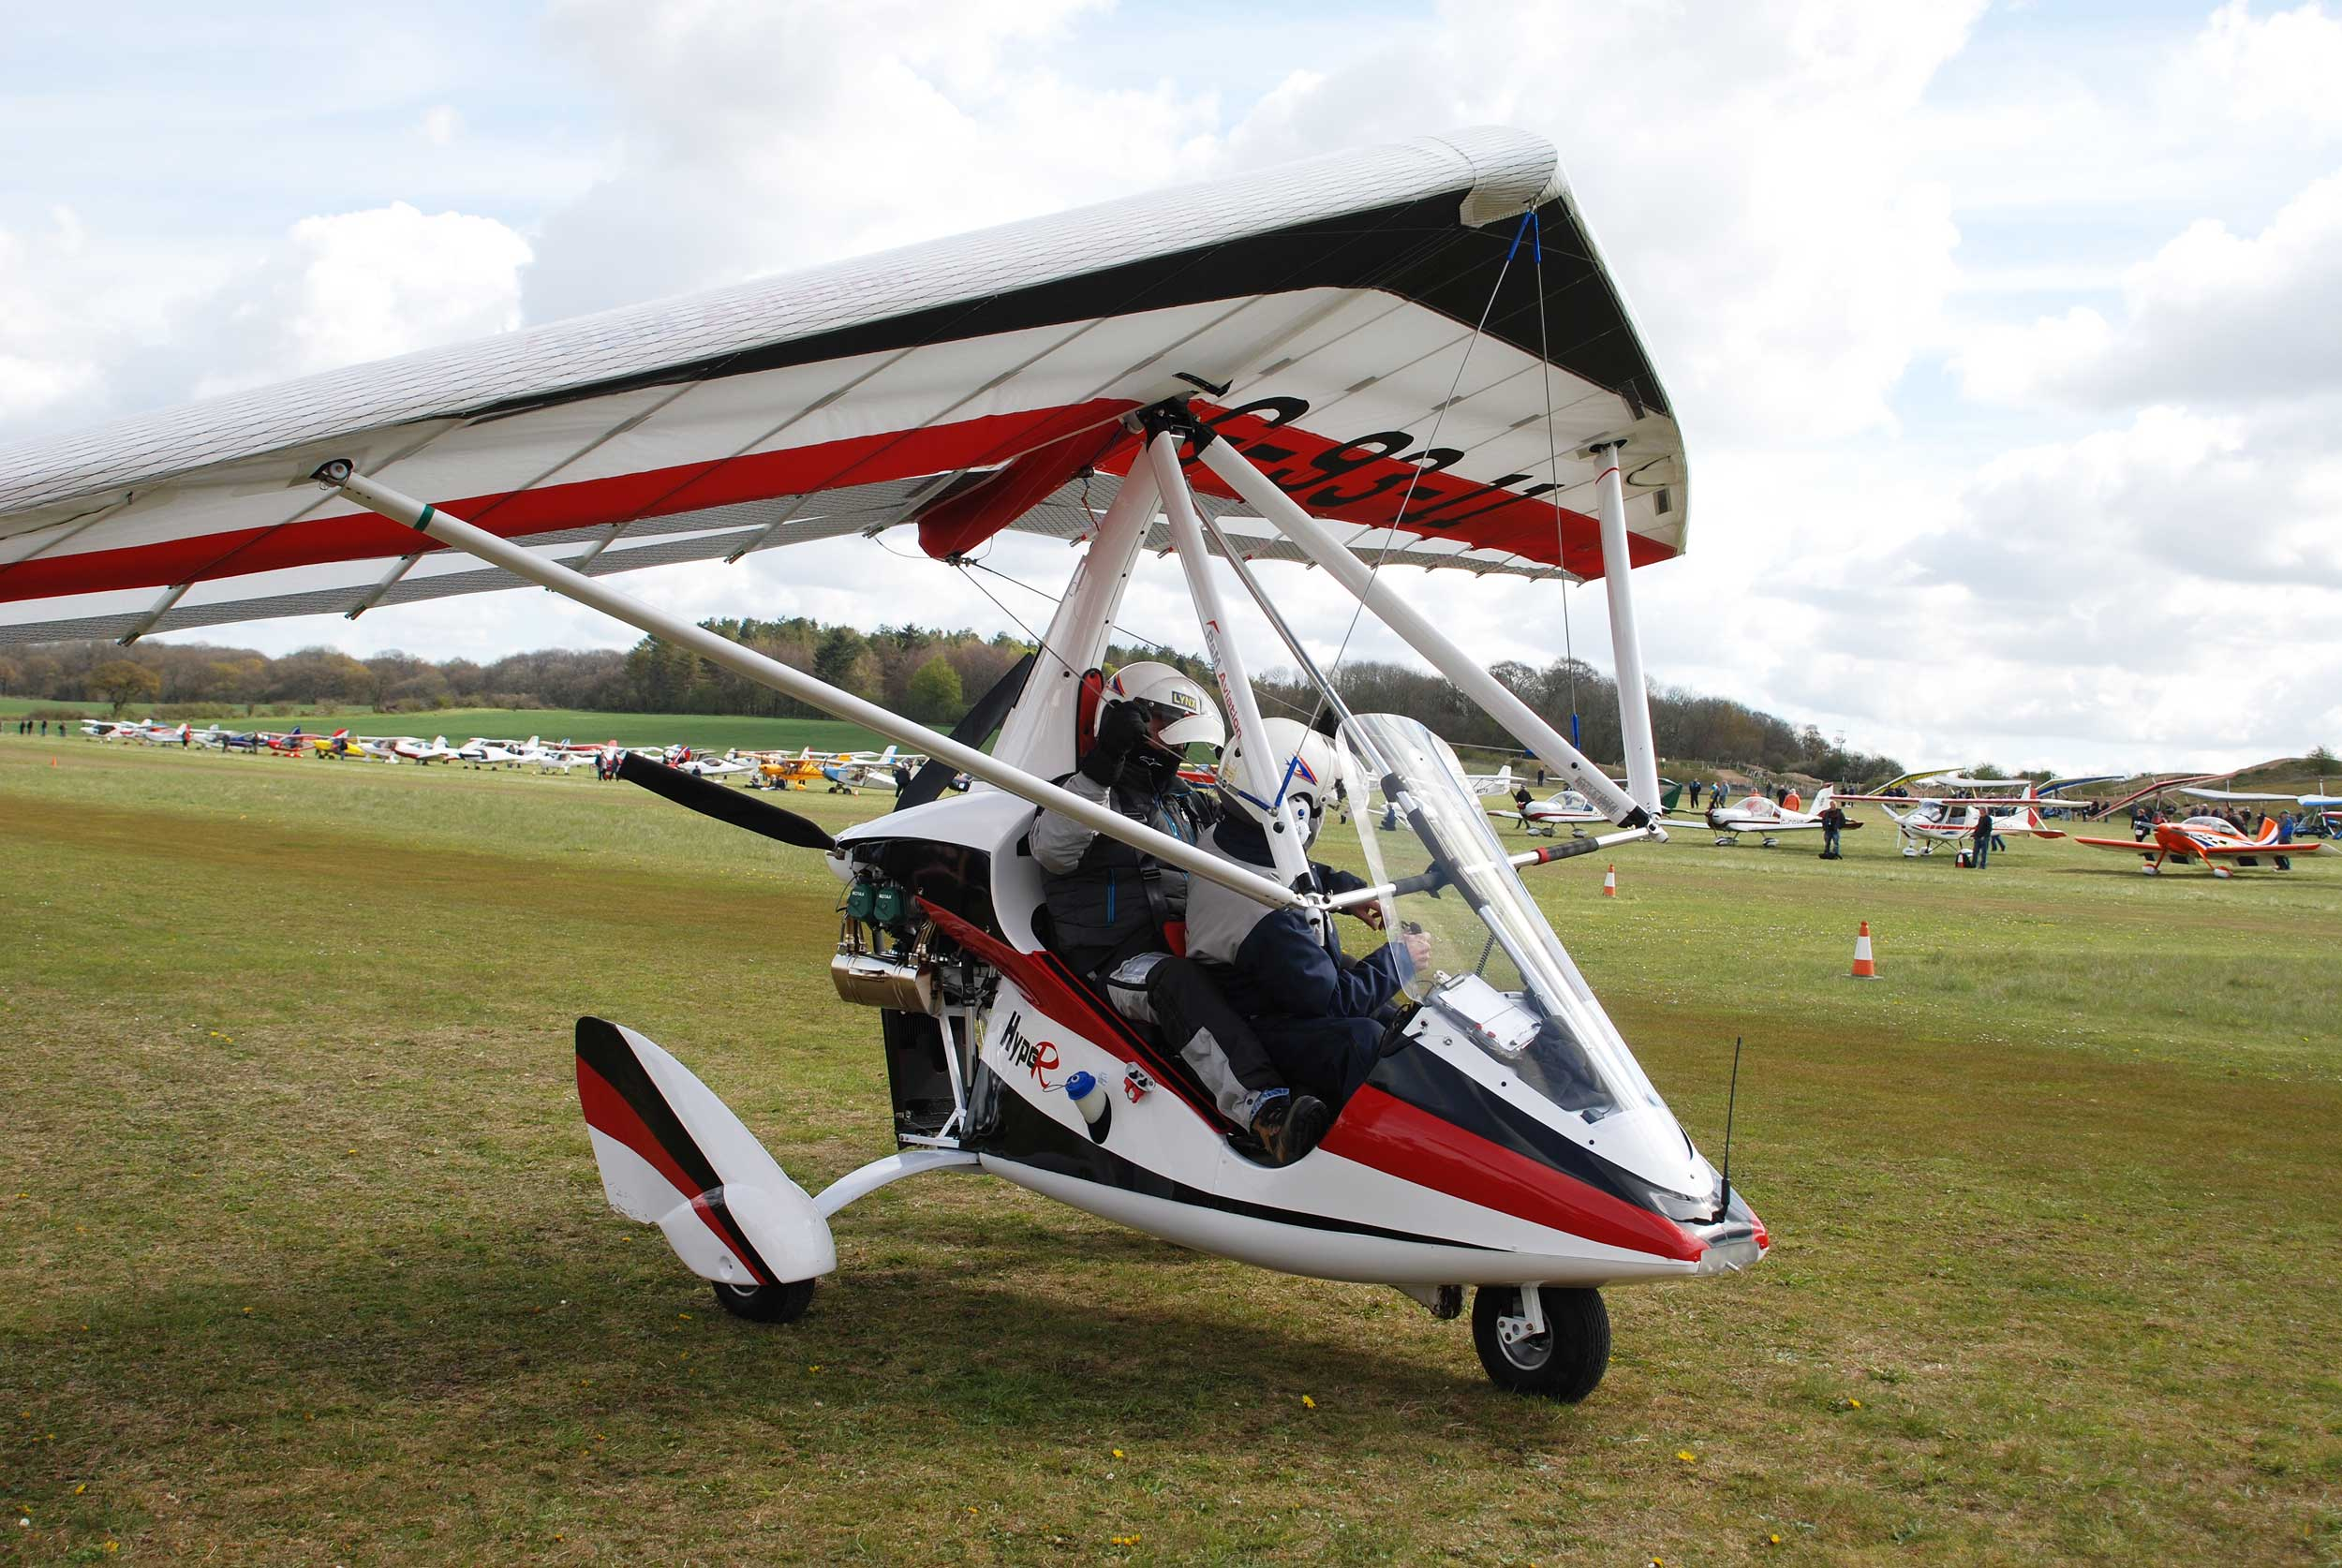 P Amp M Launches New Hyper Microlight Flyer